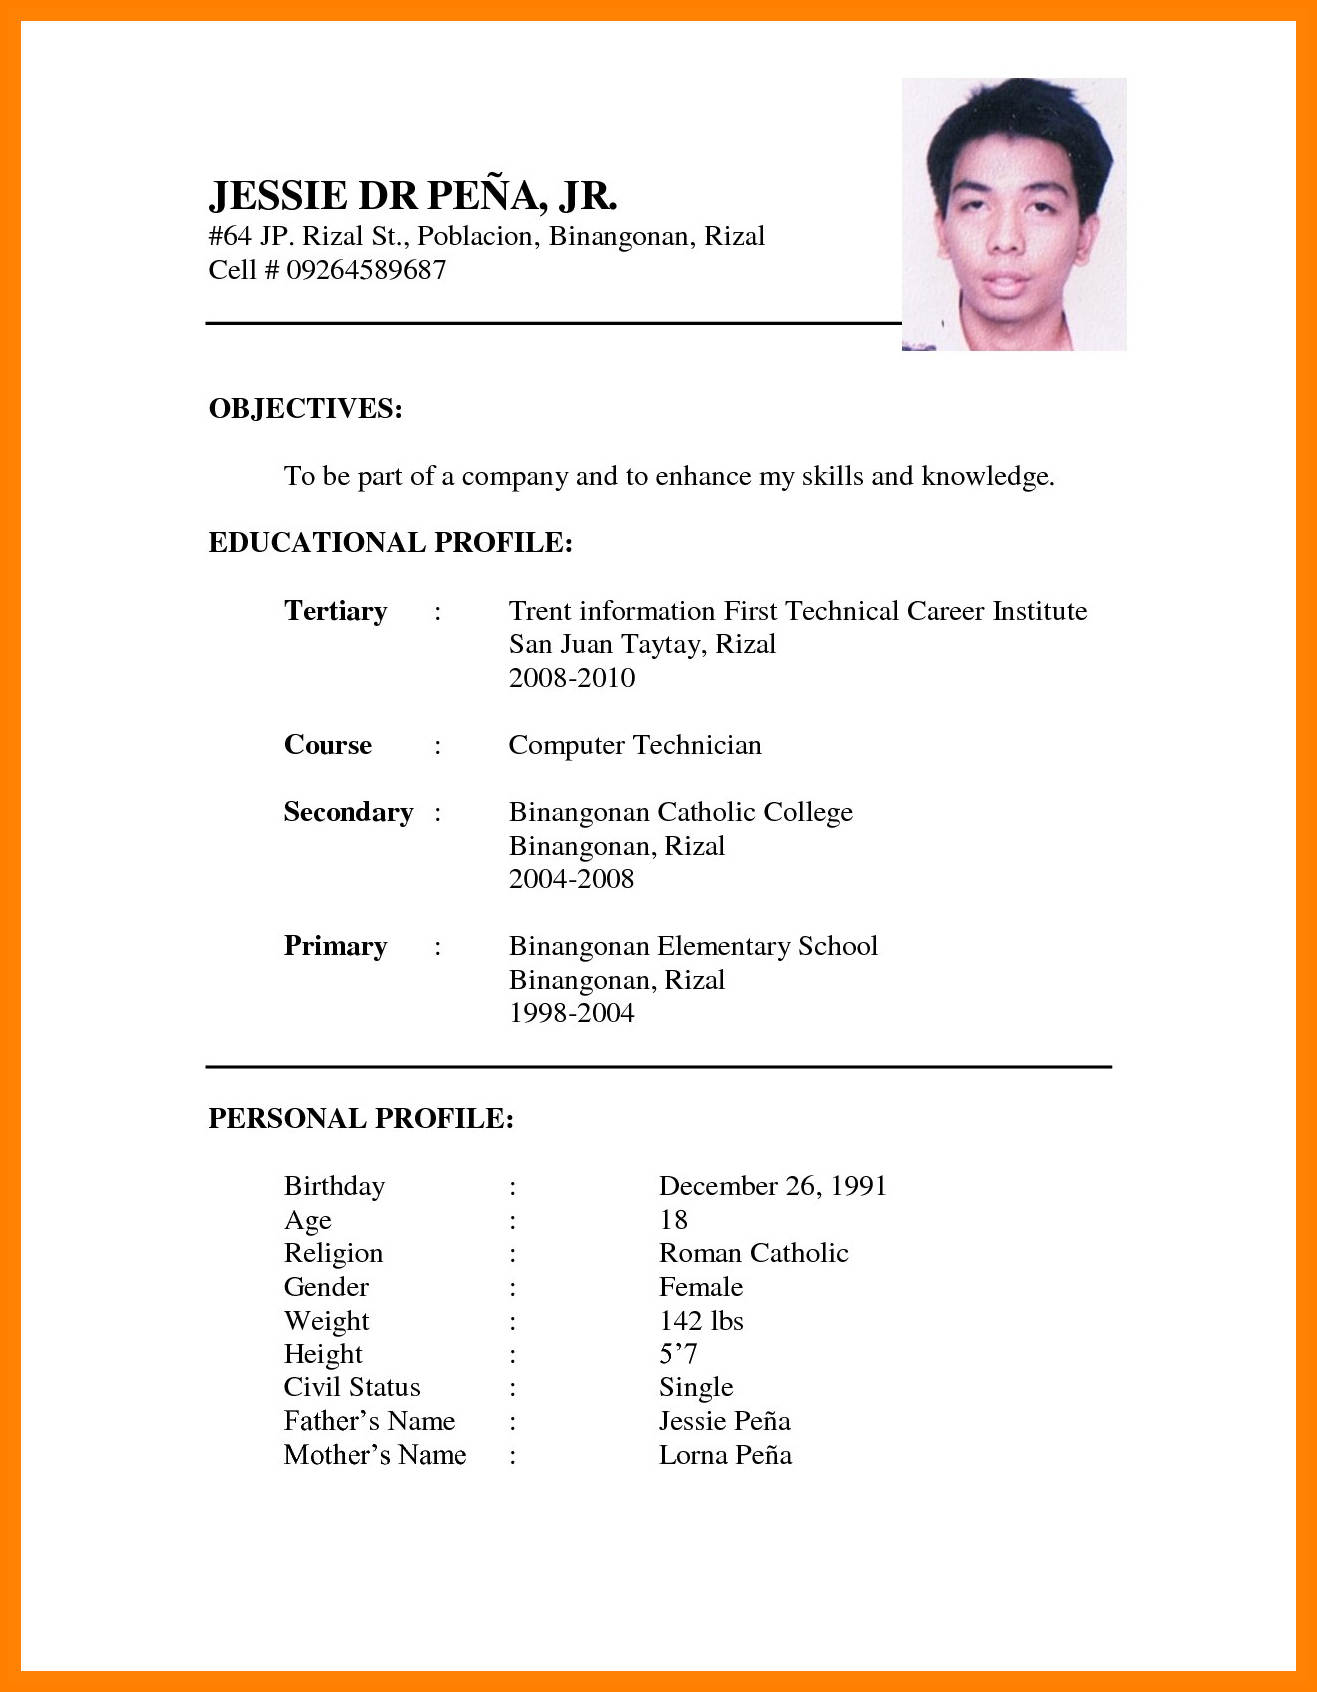 Job Application Letter Template Pdf - Resume Sample for Application Acurnamedia